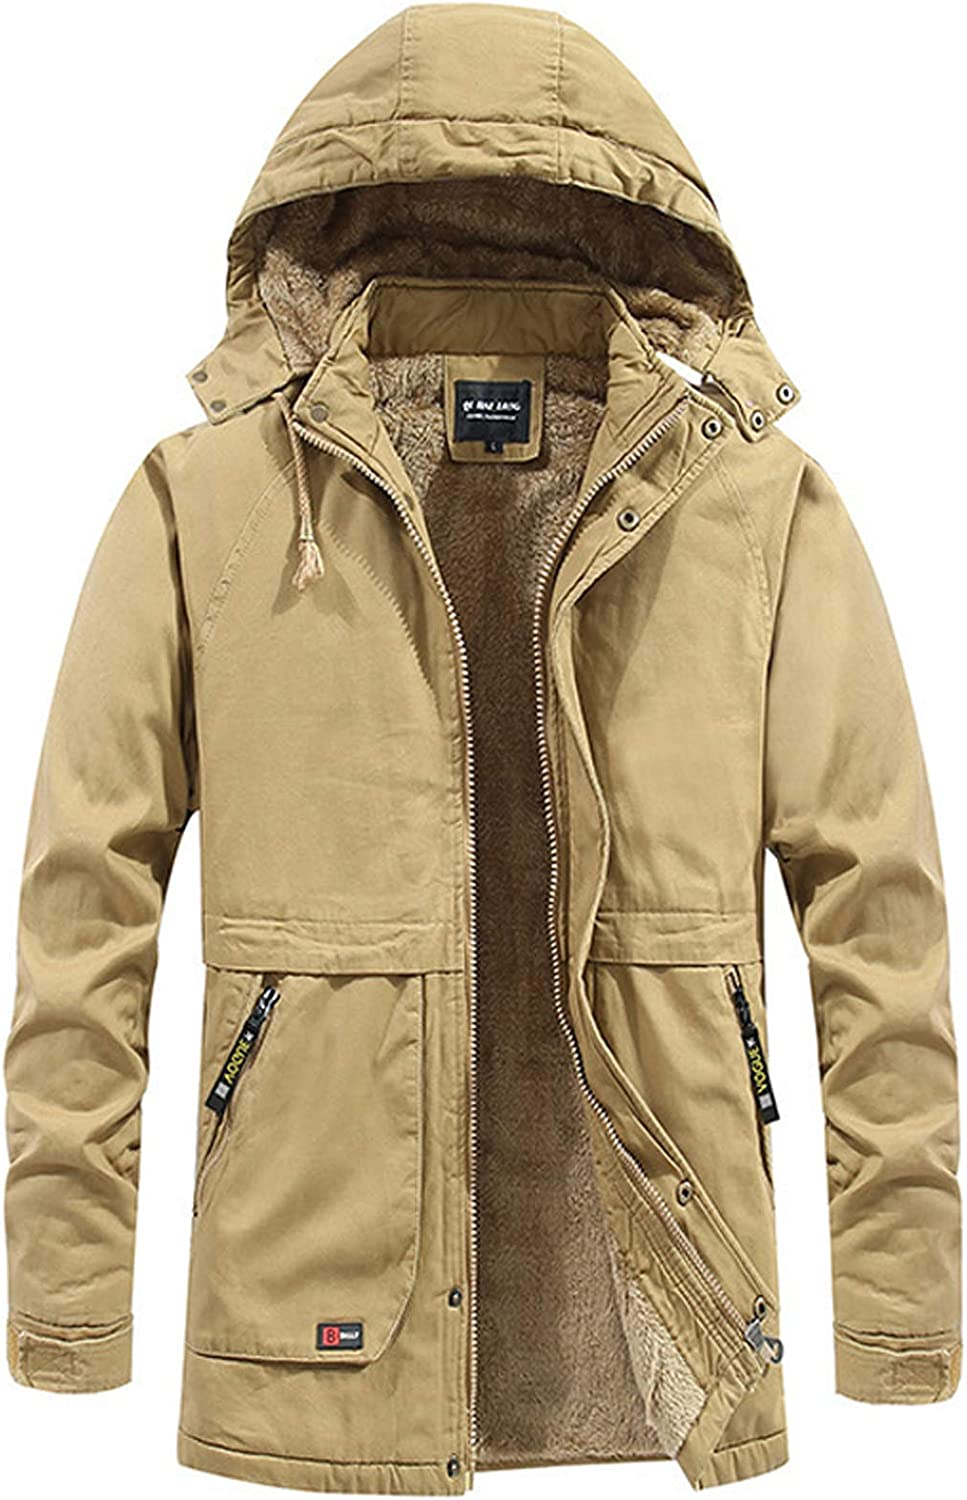 Men Winter Coats with Hood New arrival Fleece H Thicken online shopping Lining Casual Jacket